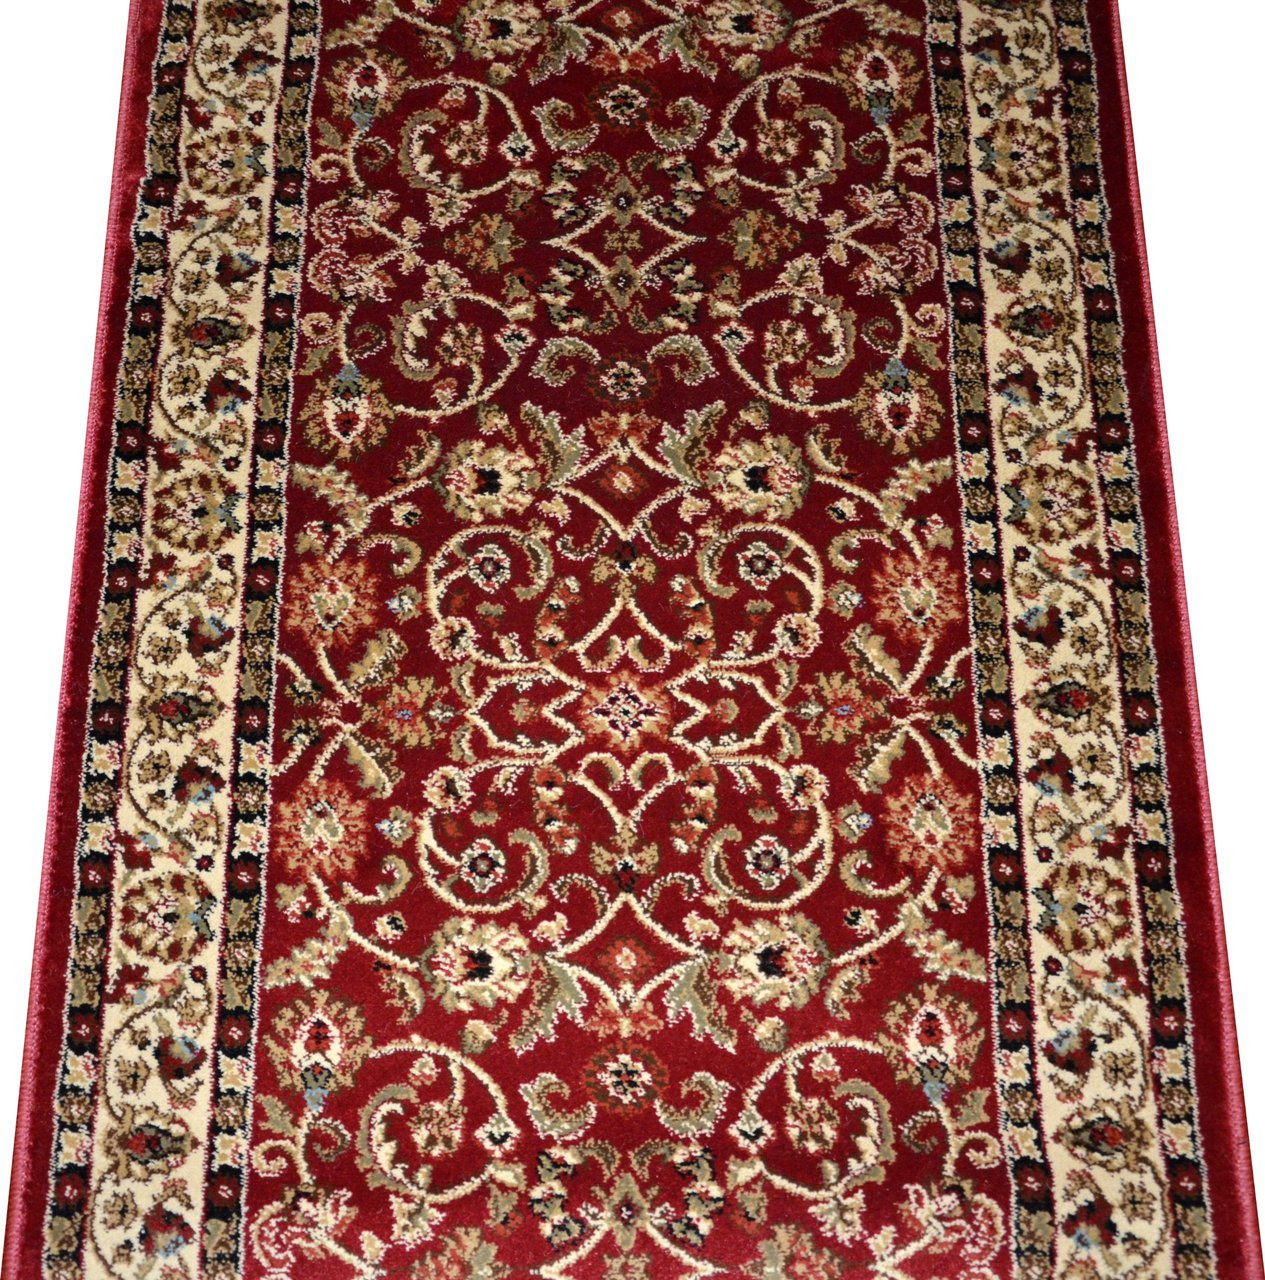 Dean Classic Keshan Claret Red Custom Length Carpet Rug